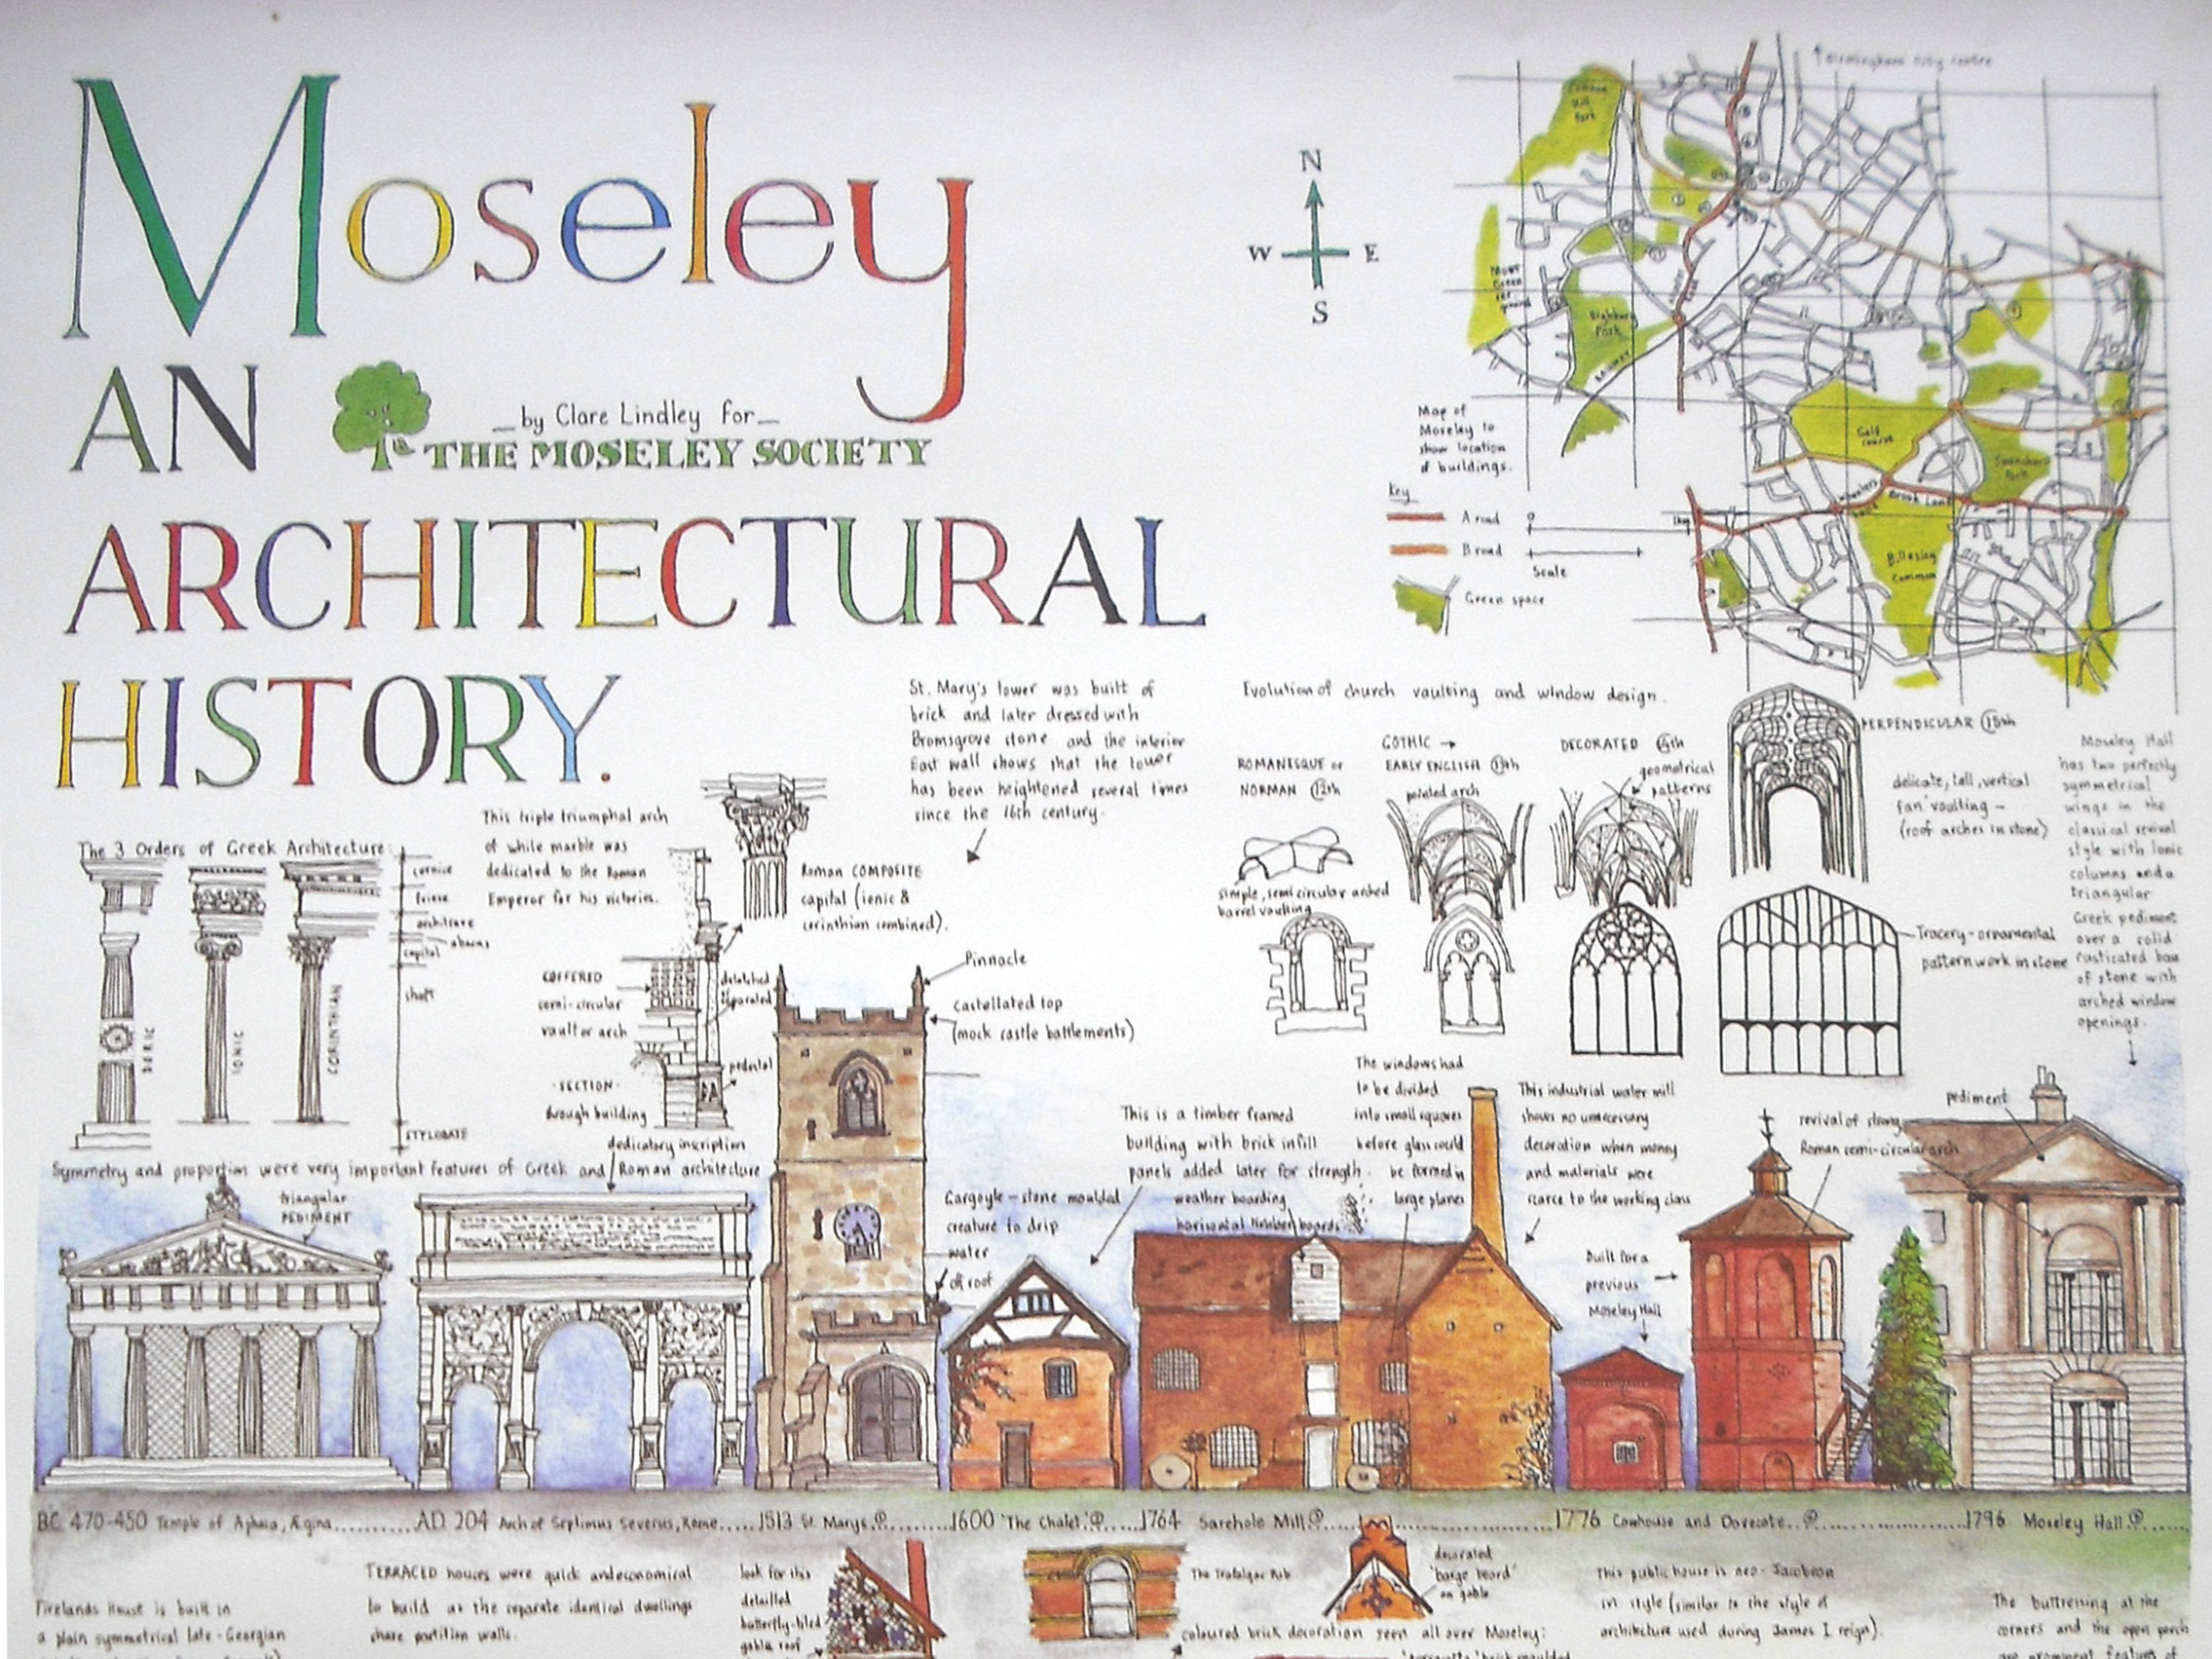 An Architectural History of Moseley – By Clare Lindley